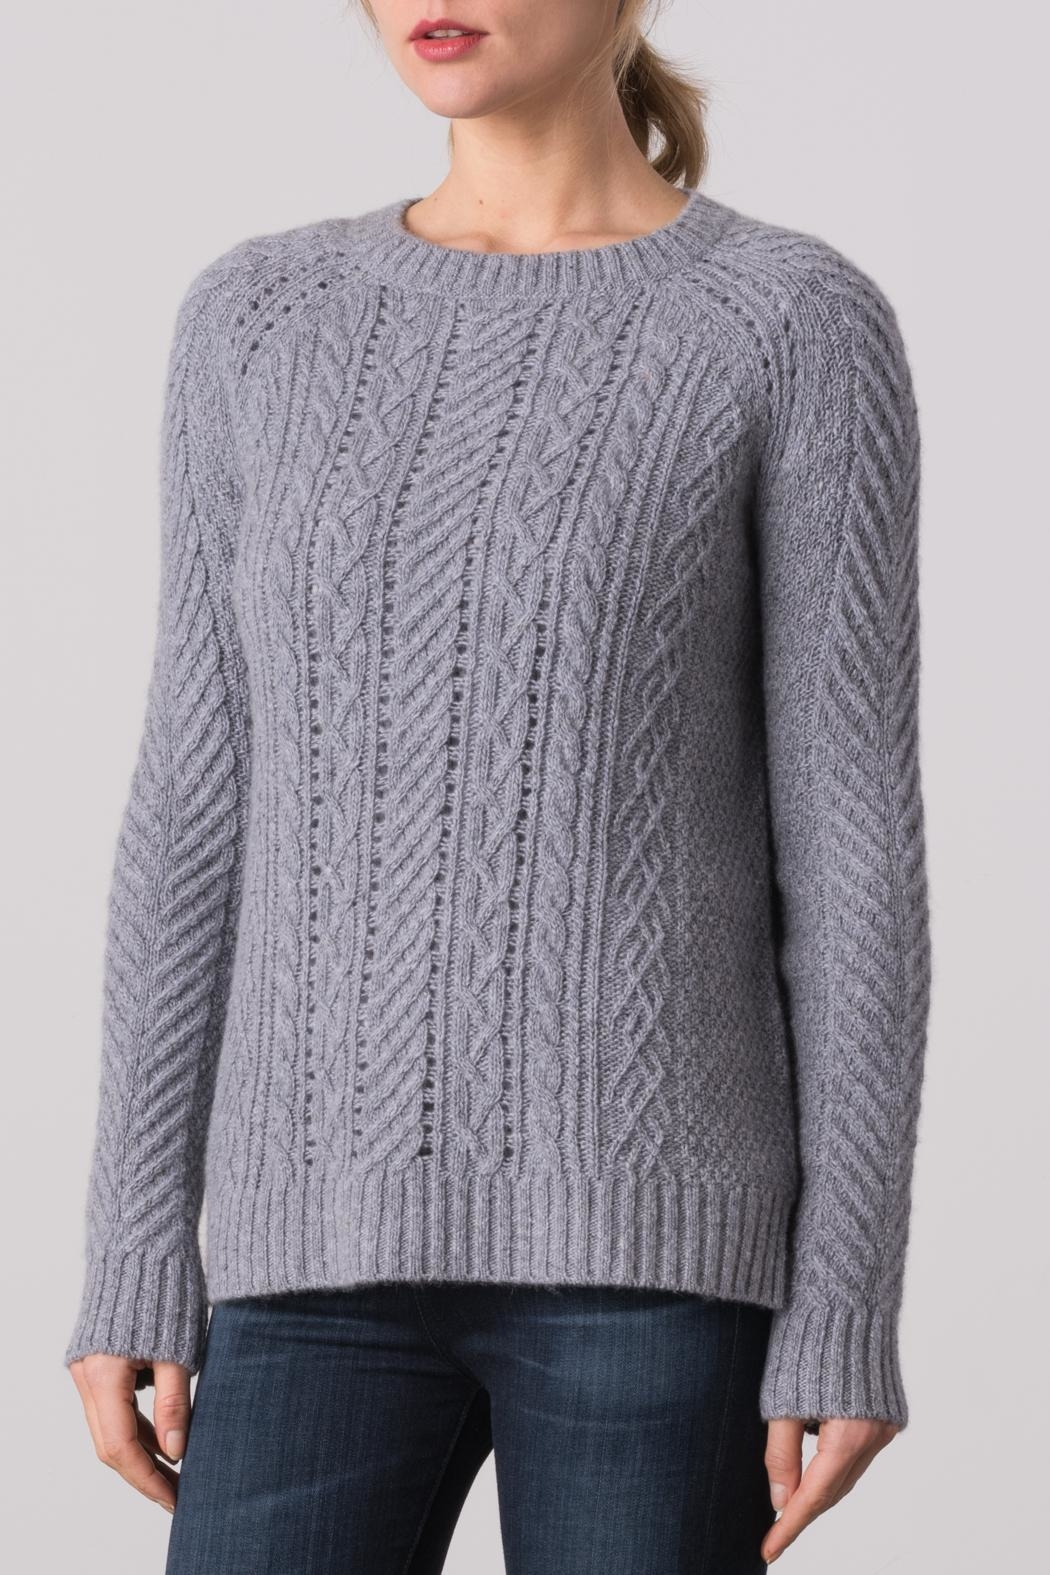 Margaret O'Leary Sarah Cable Crew Sweater - Main Image